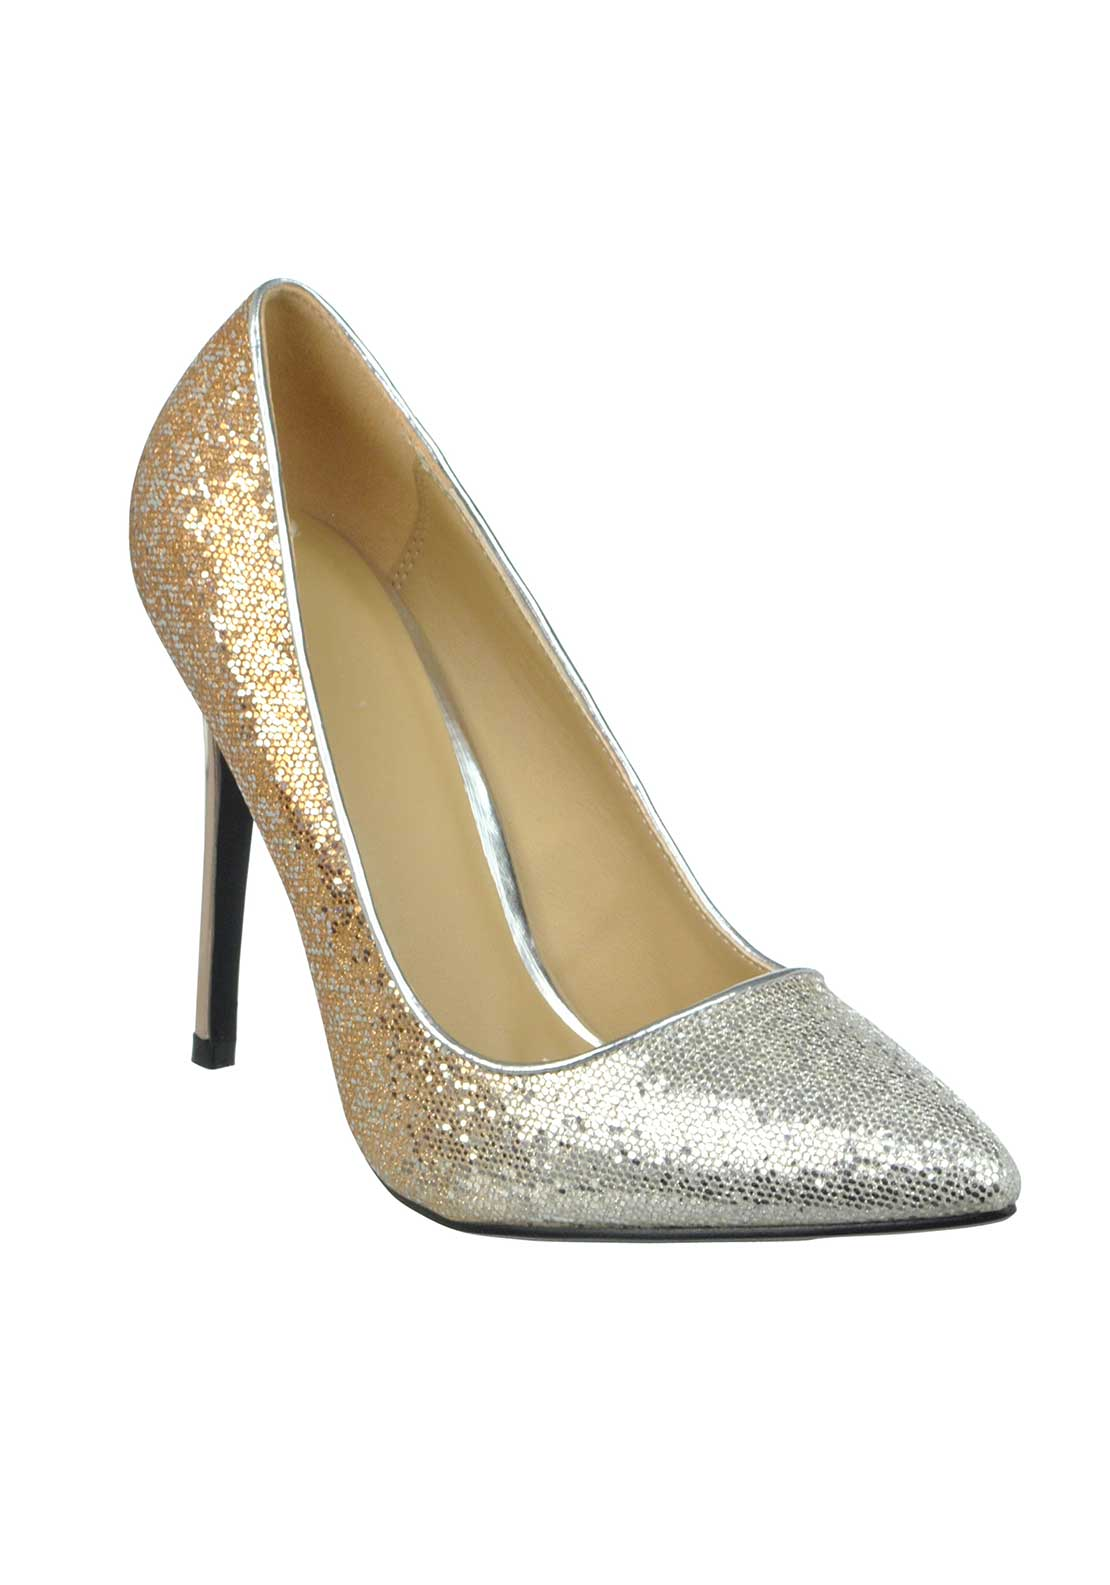 Livesey Glitter Multi Tonal Pointed Toe Heeled Shoes, Silver and Gold